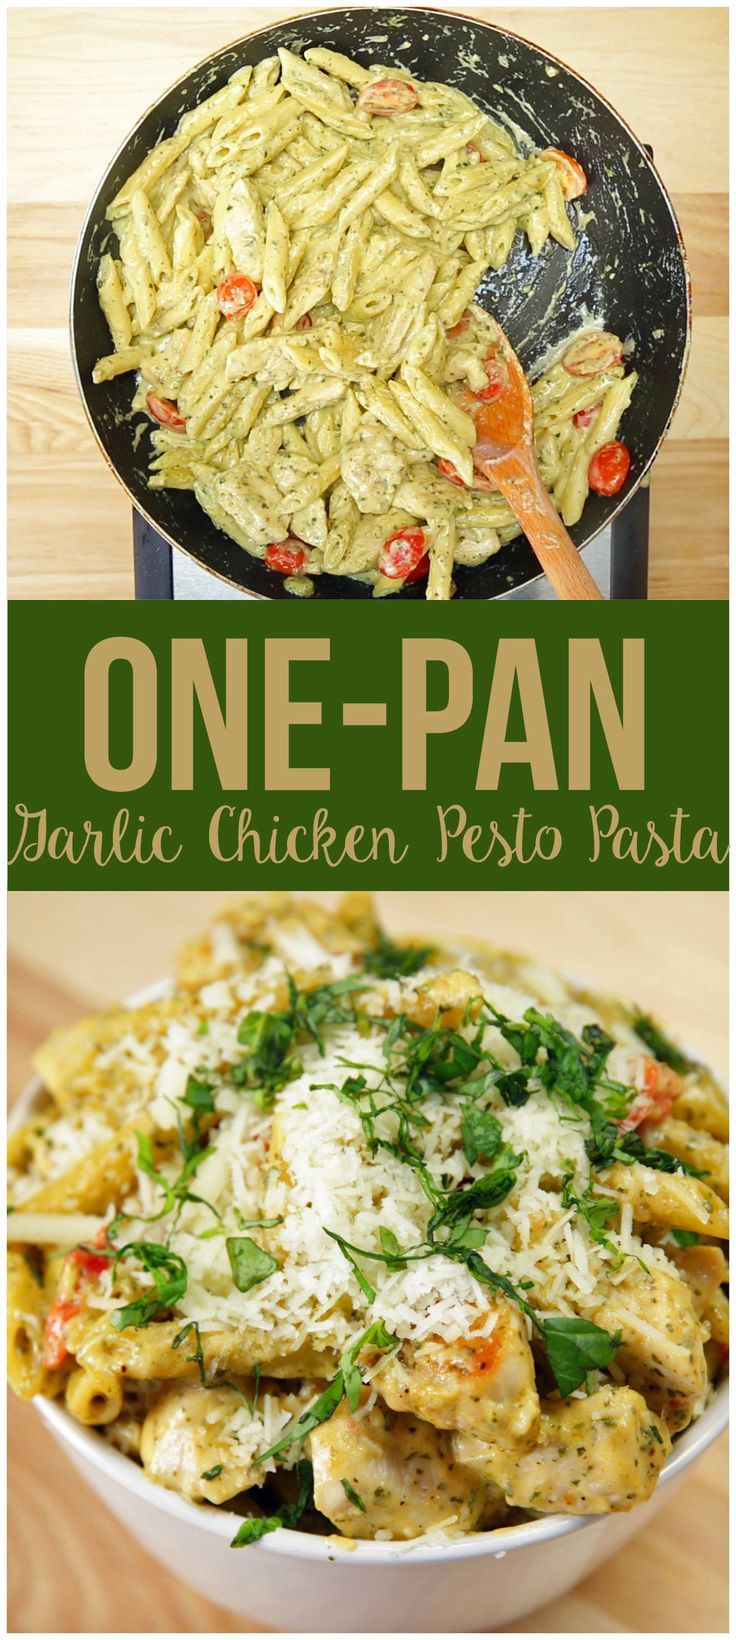 This Easy AF One-Pan Pasta Dish Is Definitely Dinner Tonight https://www.buzzfeed.com/alvinzhou/try-this-one-pan-garlic-chicken-pesto-pasta-dish-for-dinner?sub=4177892_8169520